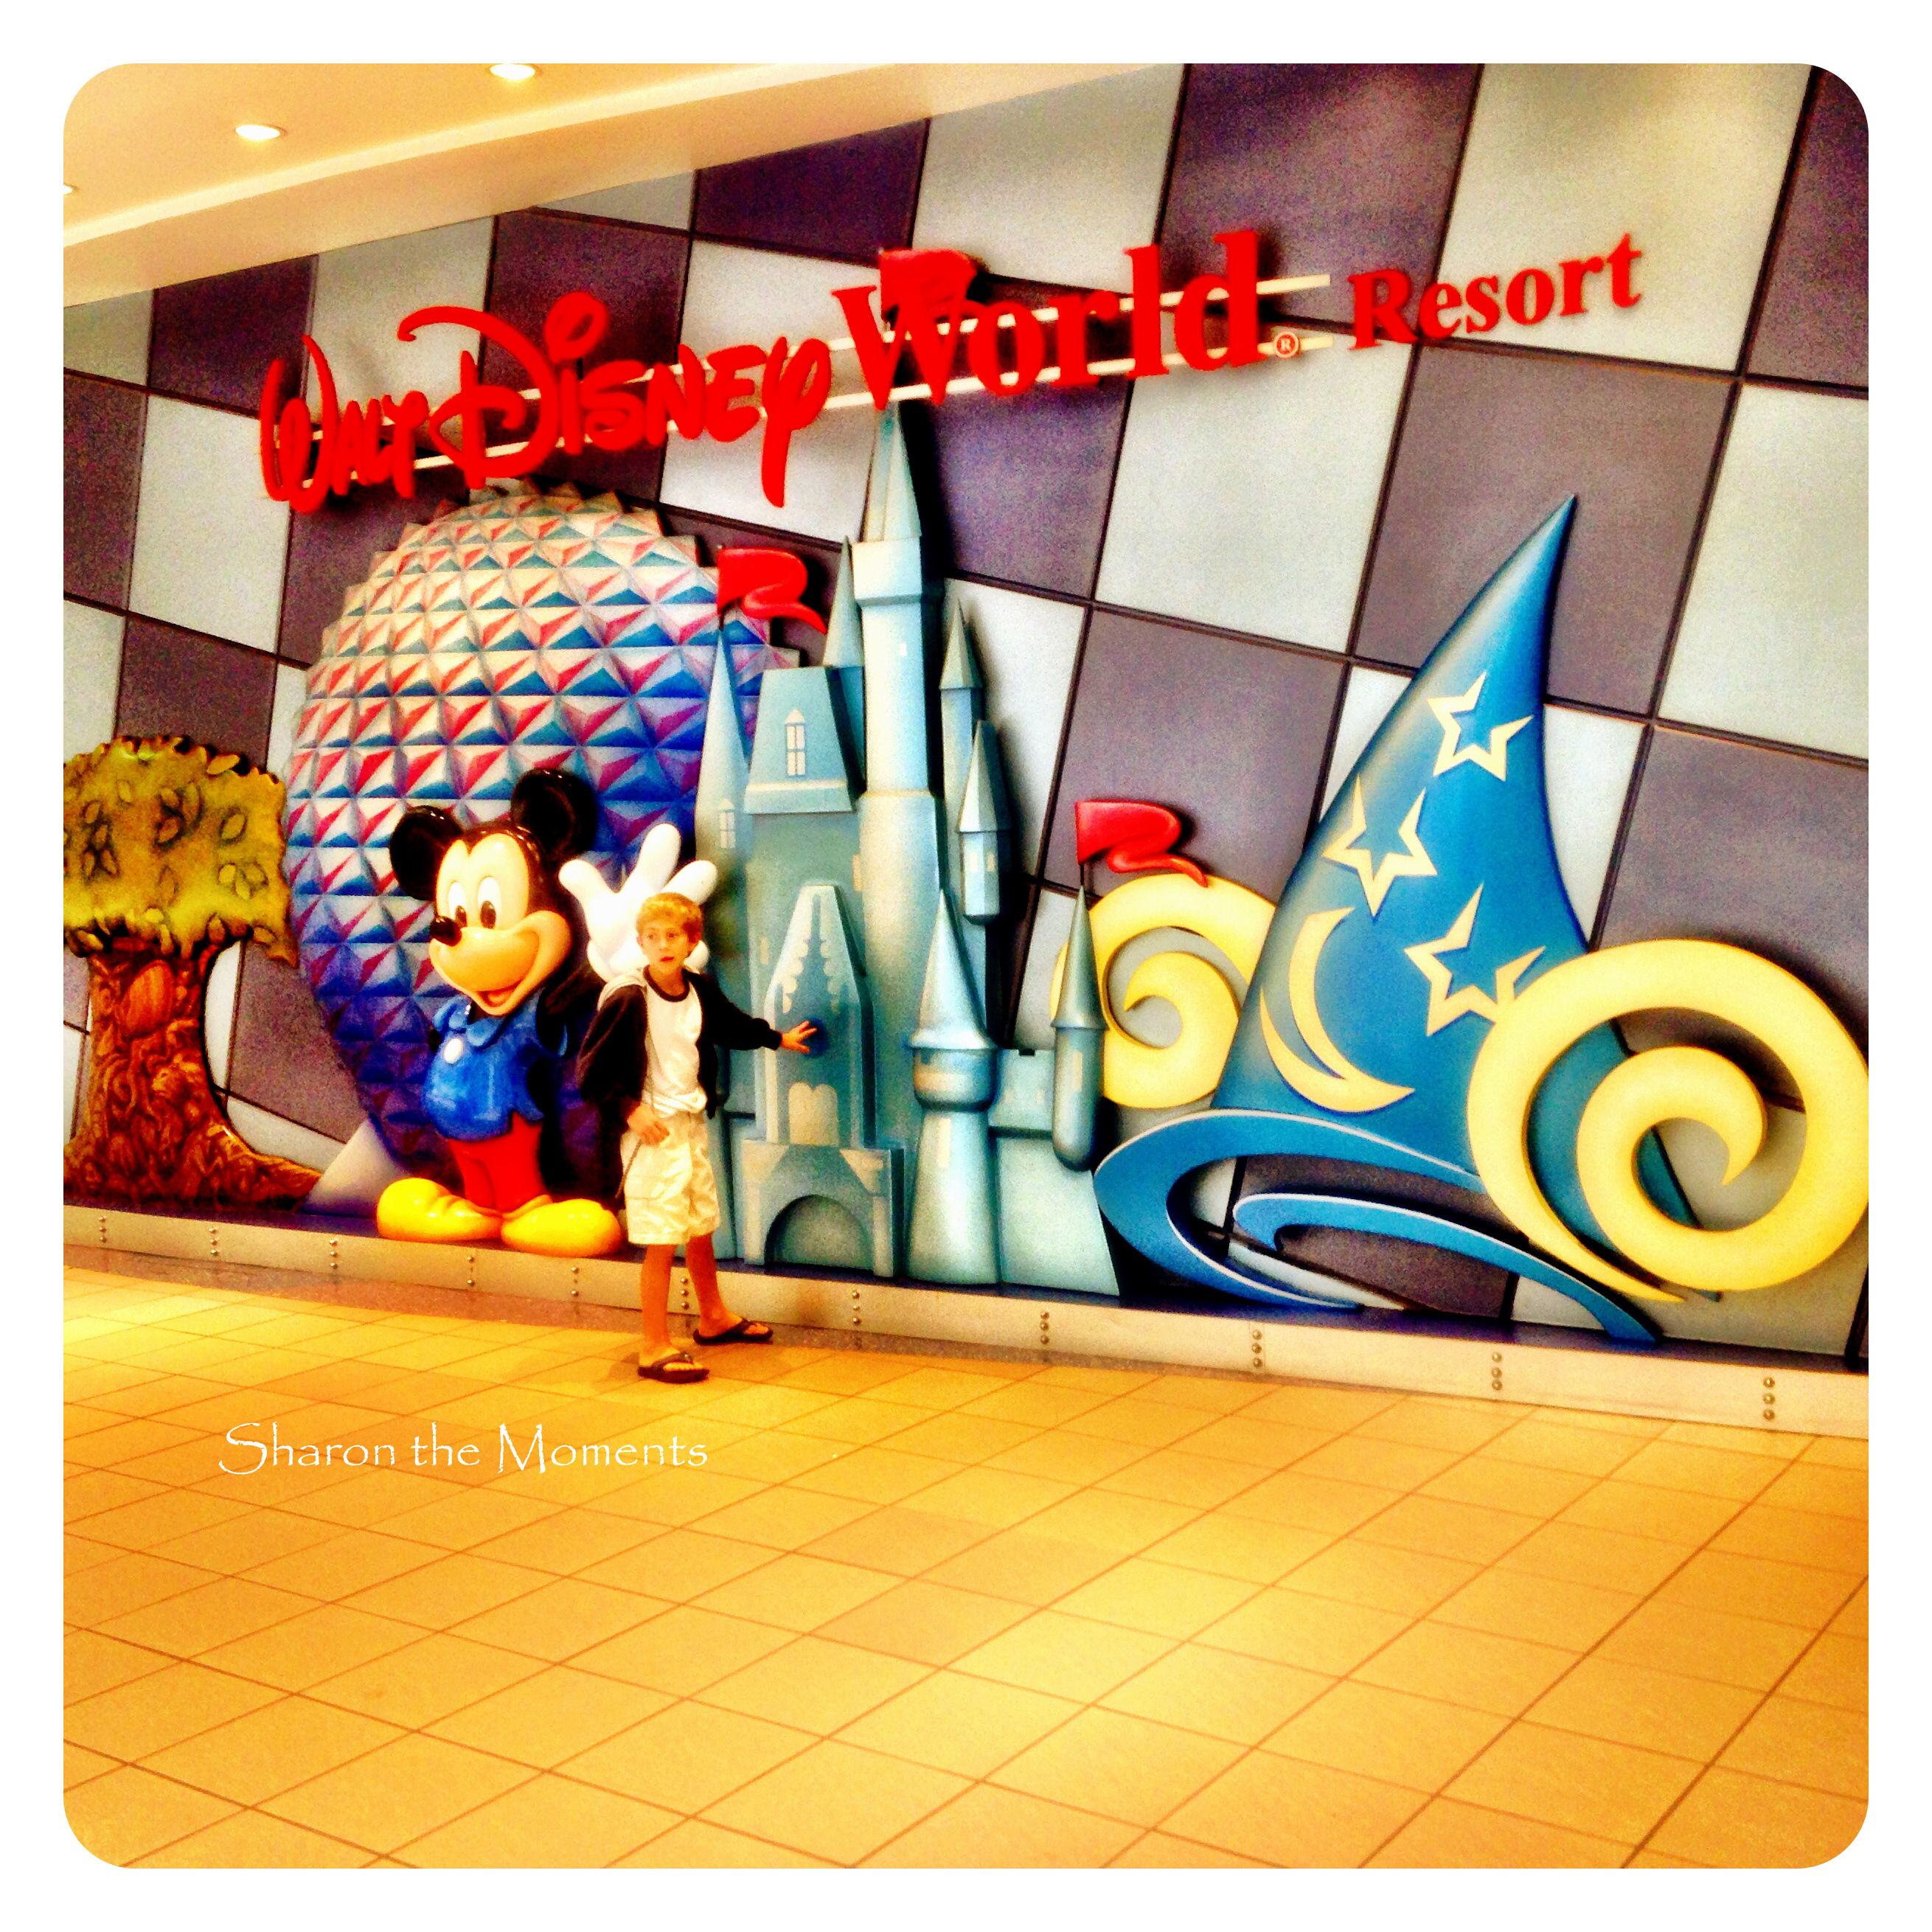 Our October visit to Walt Disney World|Sharon the Moments Blog